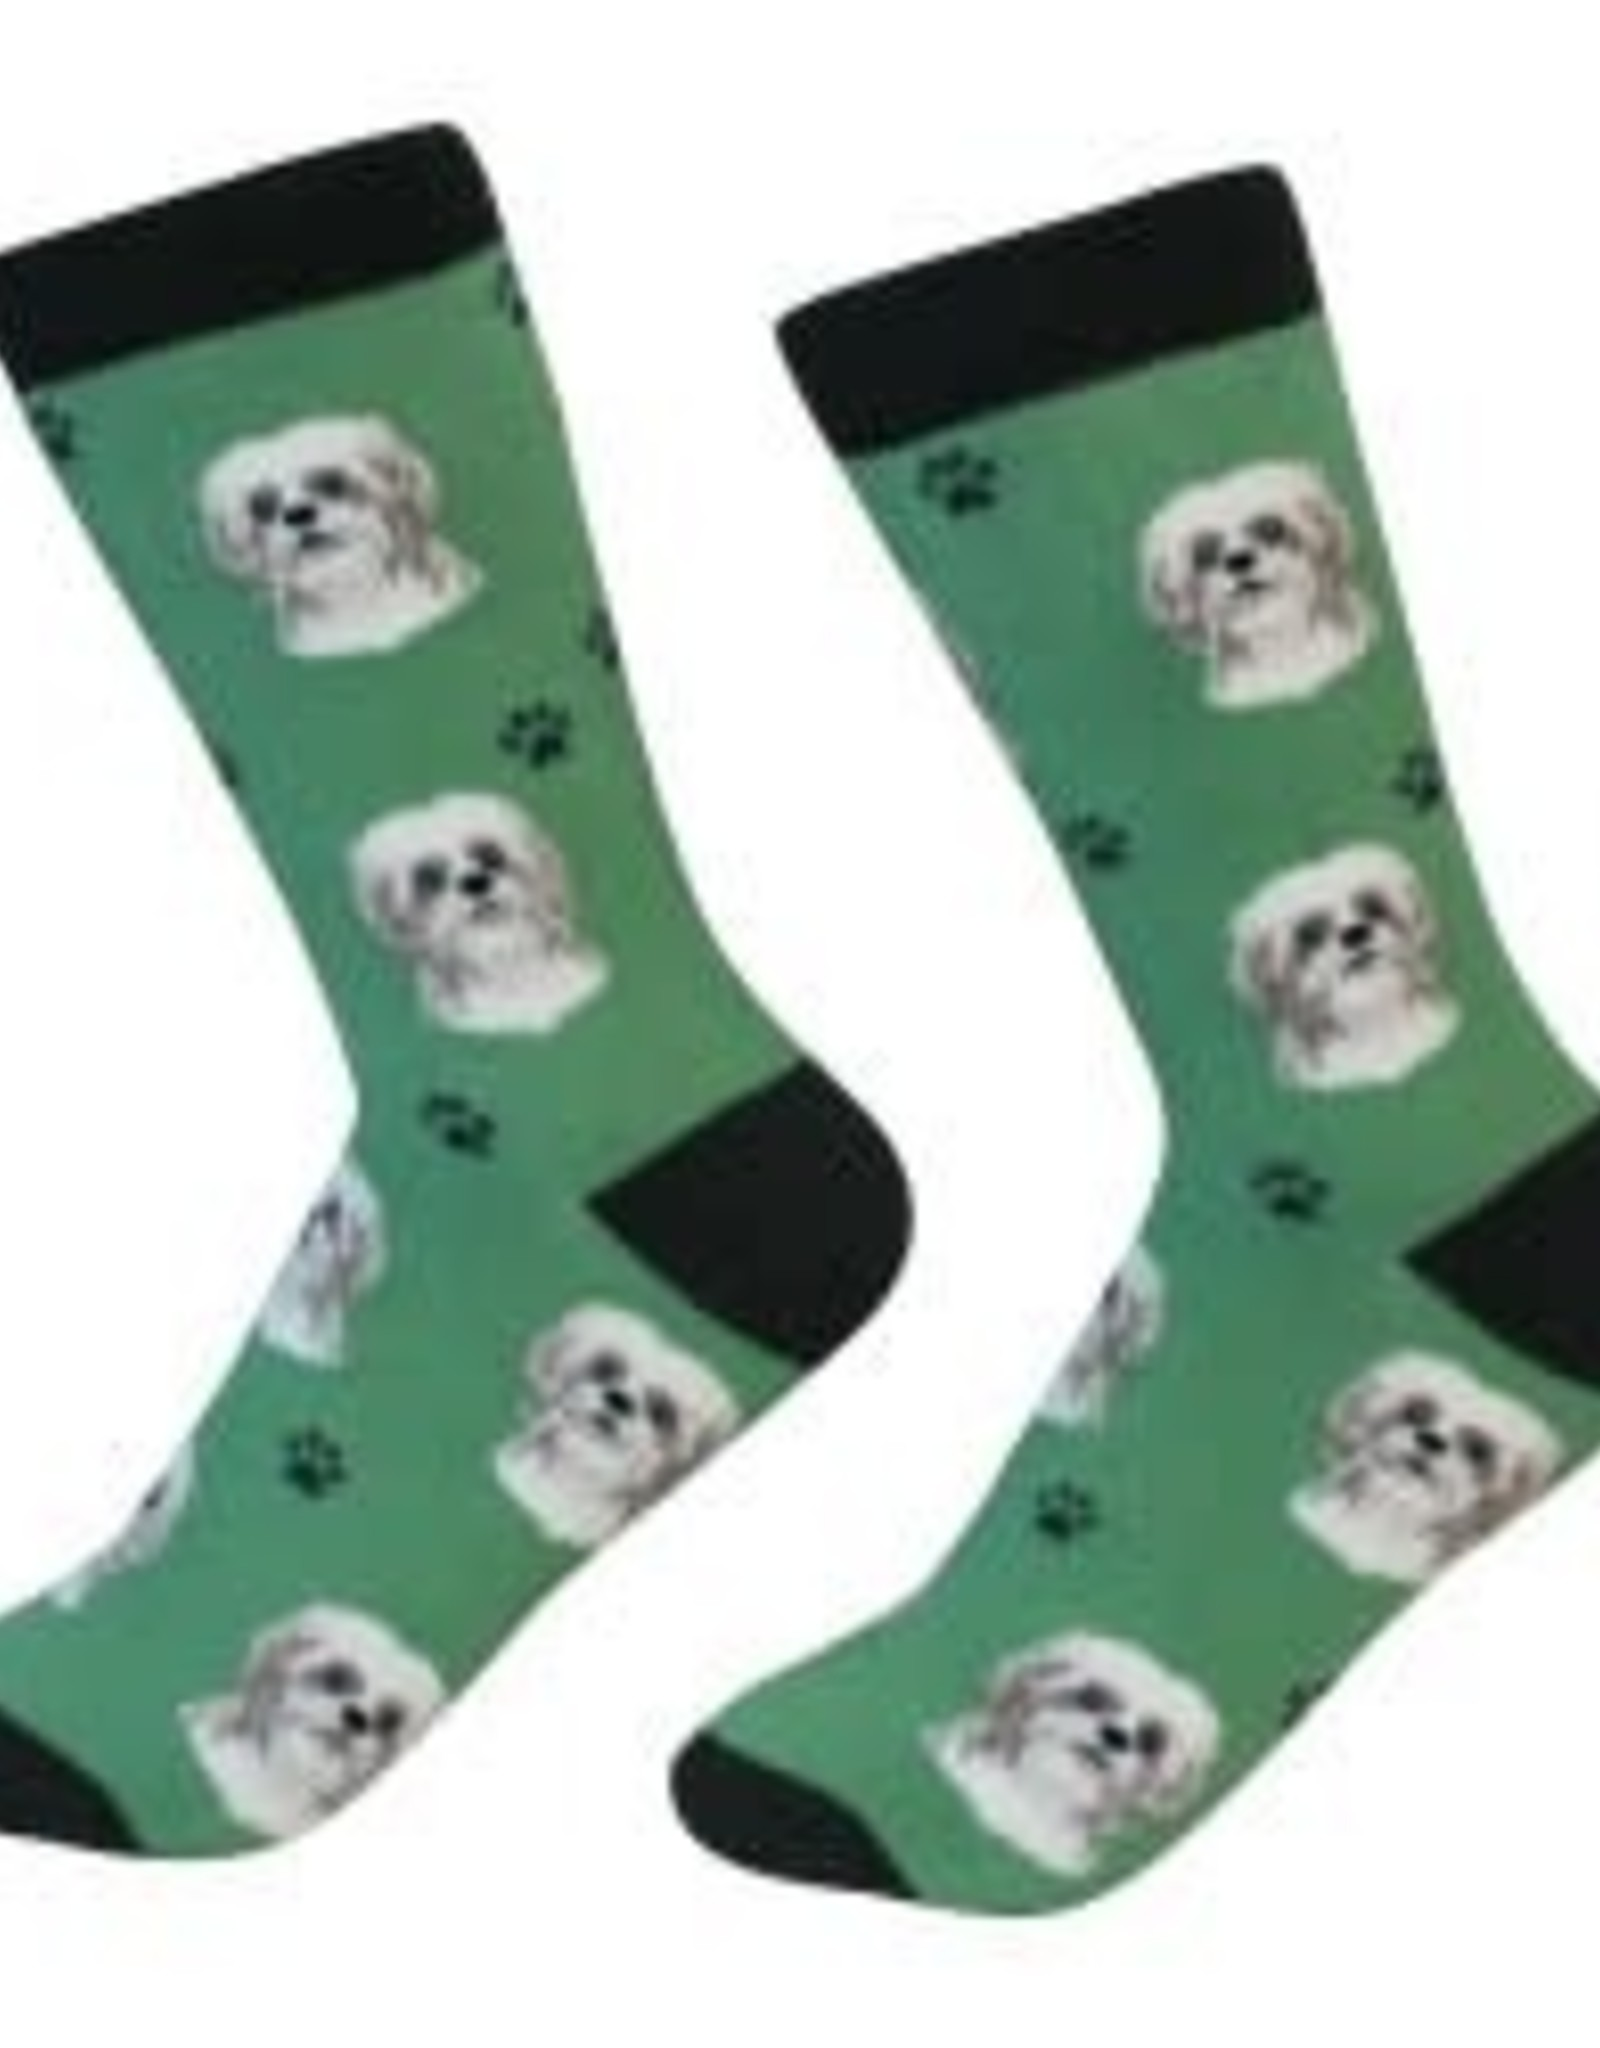 Shih Tzu Tan Socks